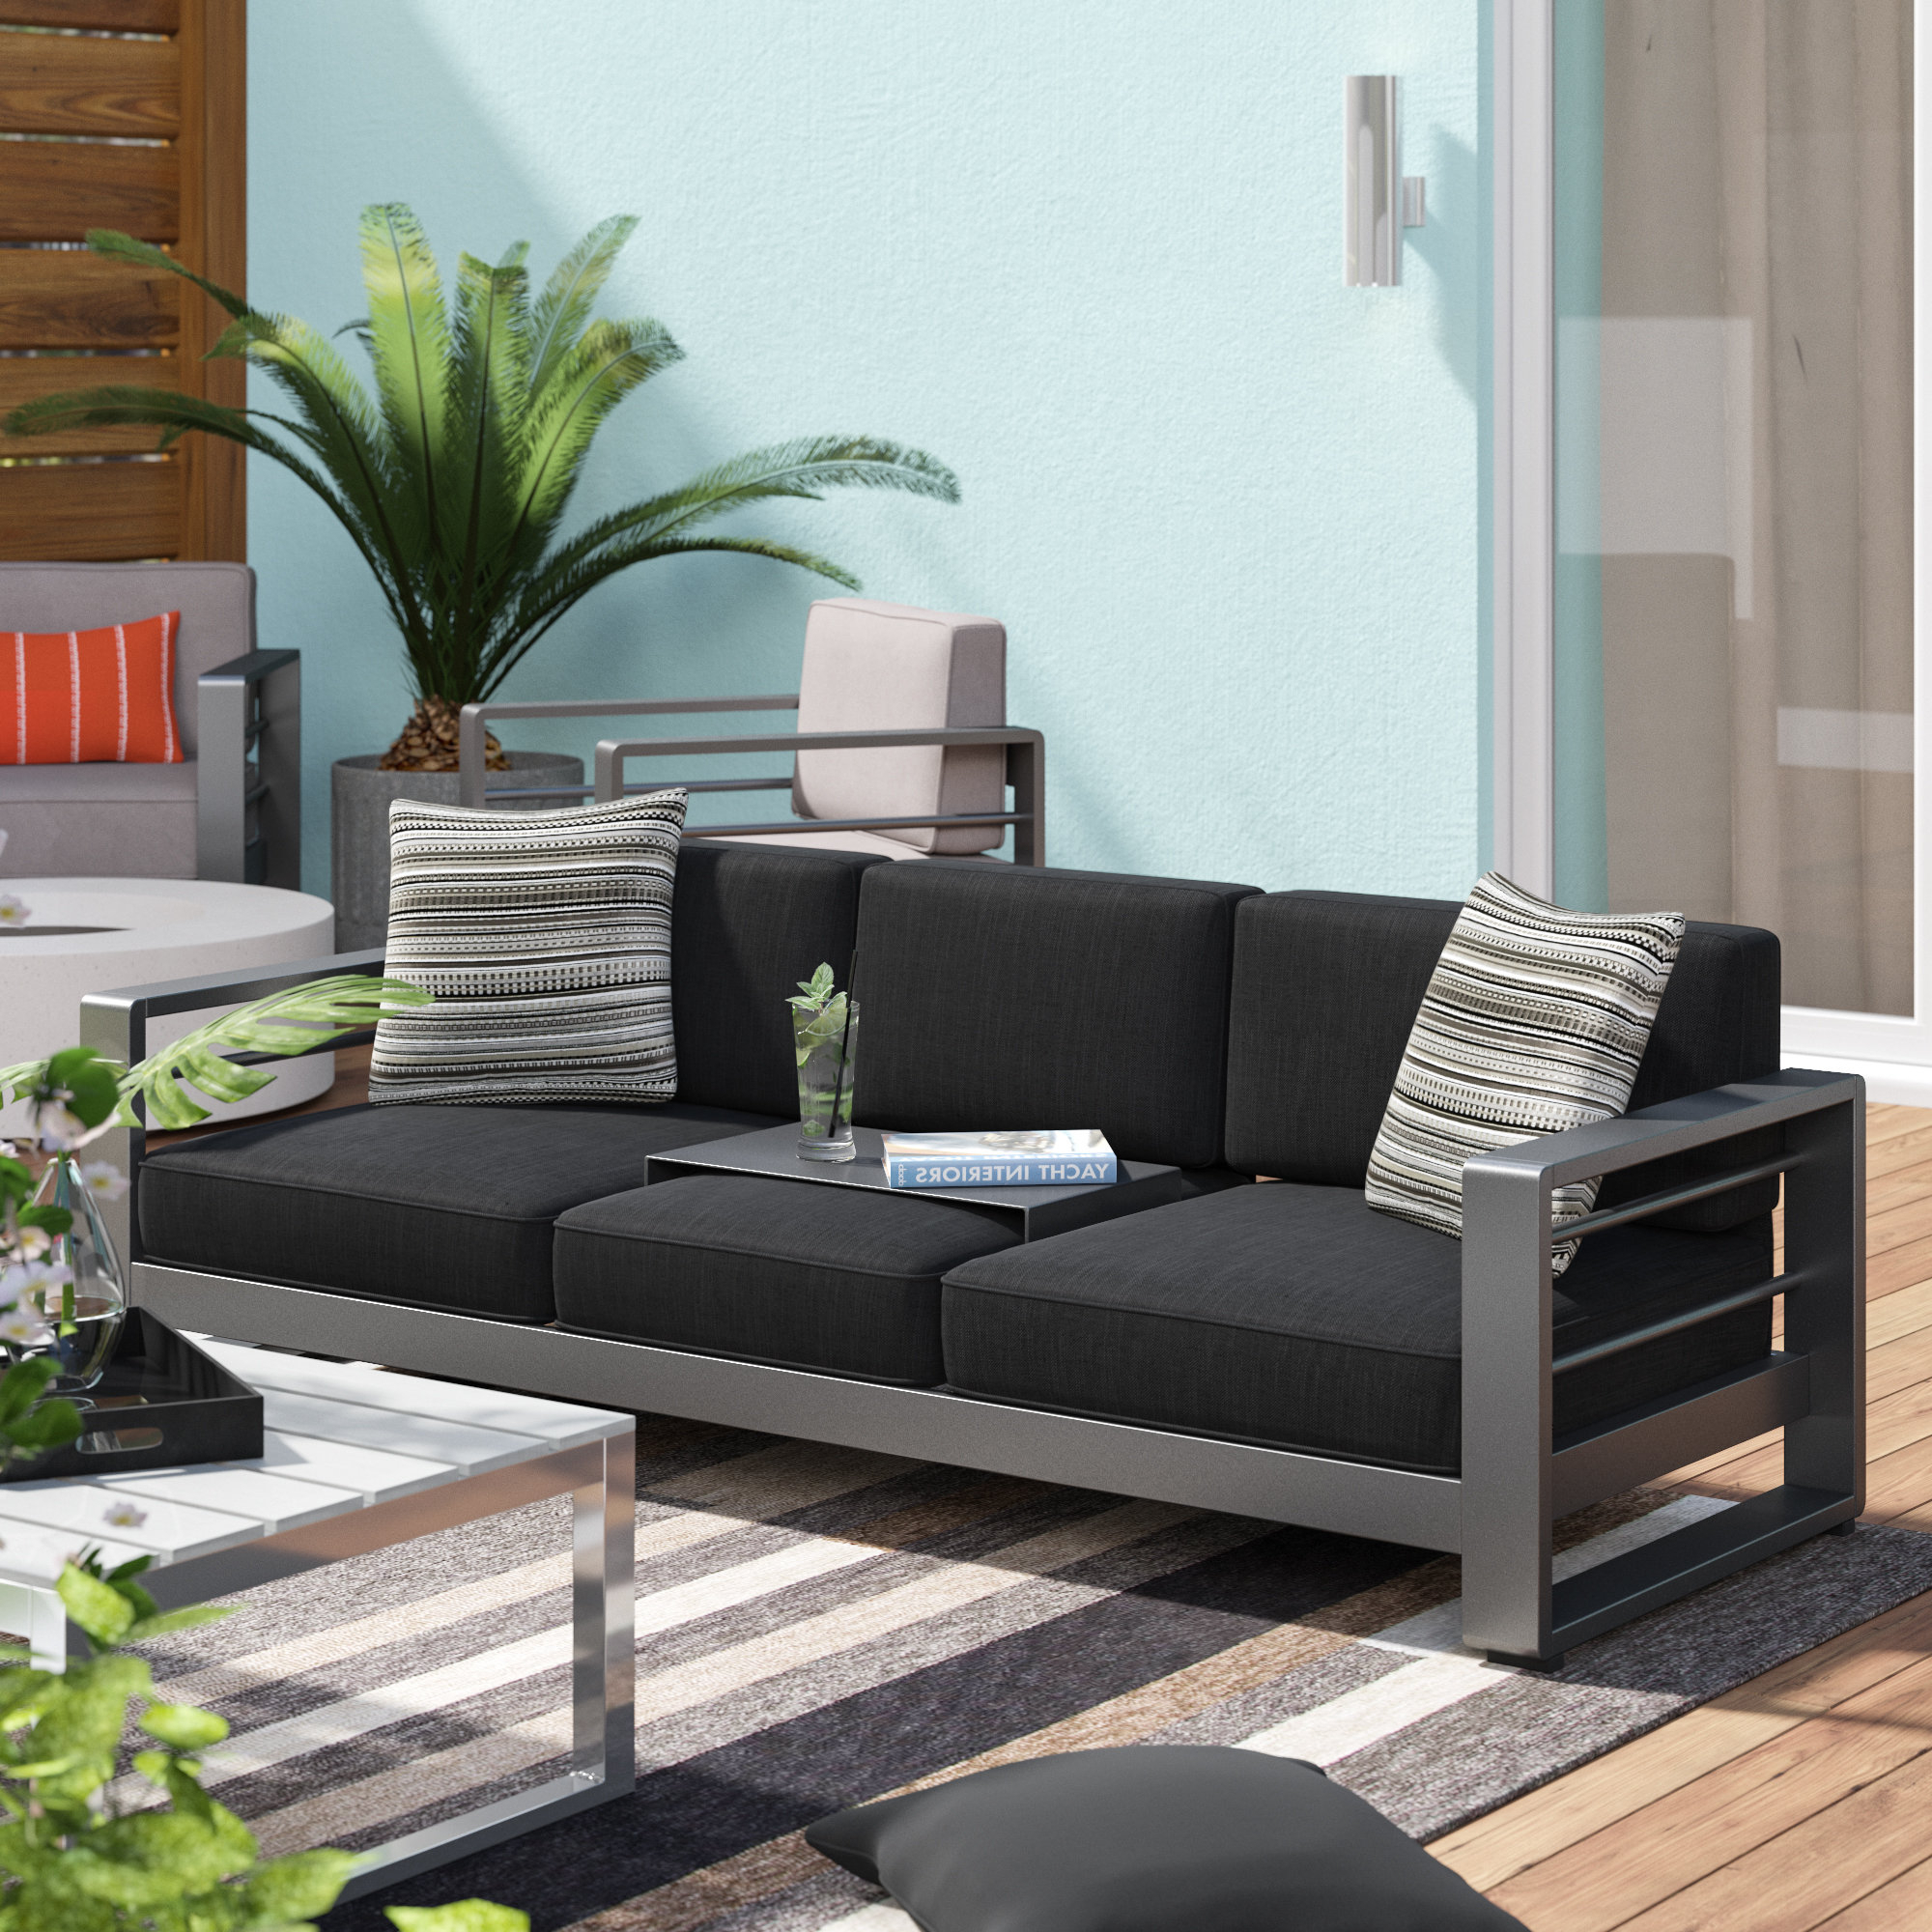 Well Liked Brayden Studio Royalston Patio Sofa With Cushions & Reviews Regarding Royalston Patio Sofas With Cushions (View 19 of 20)